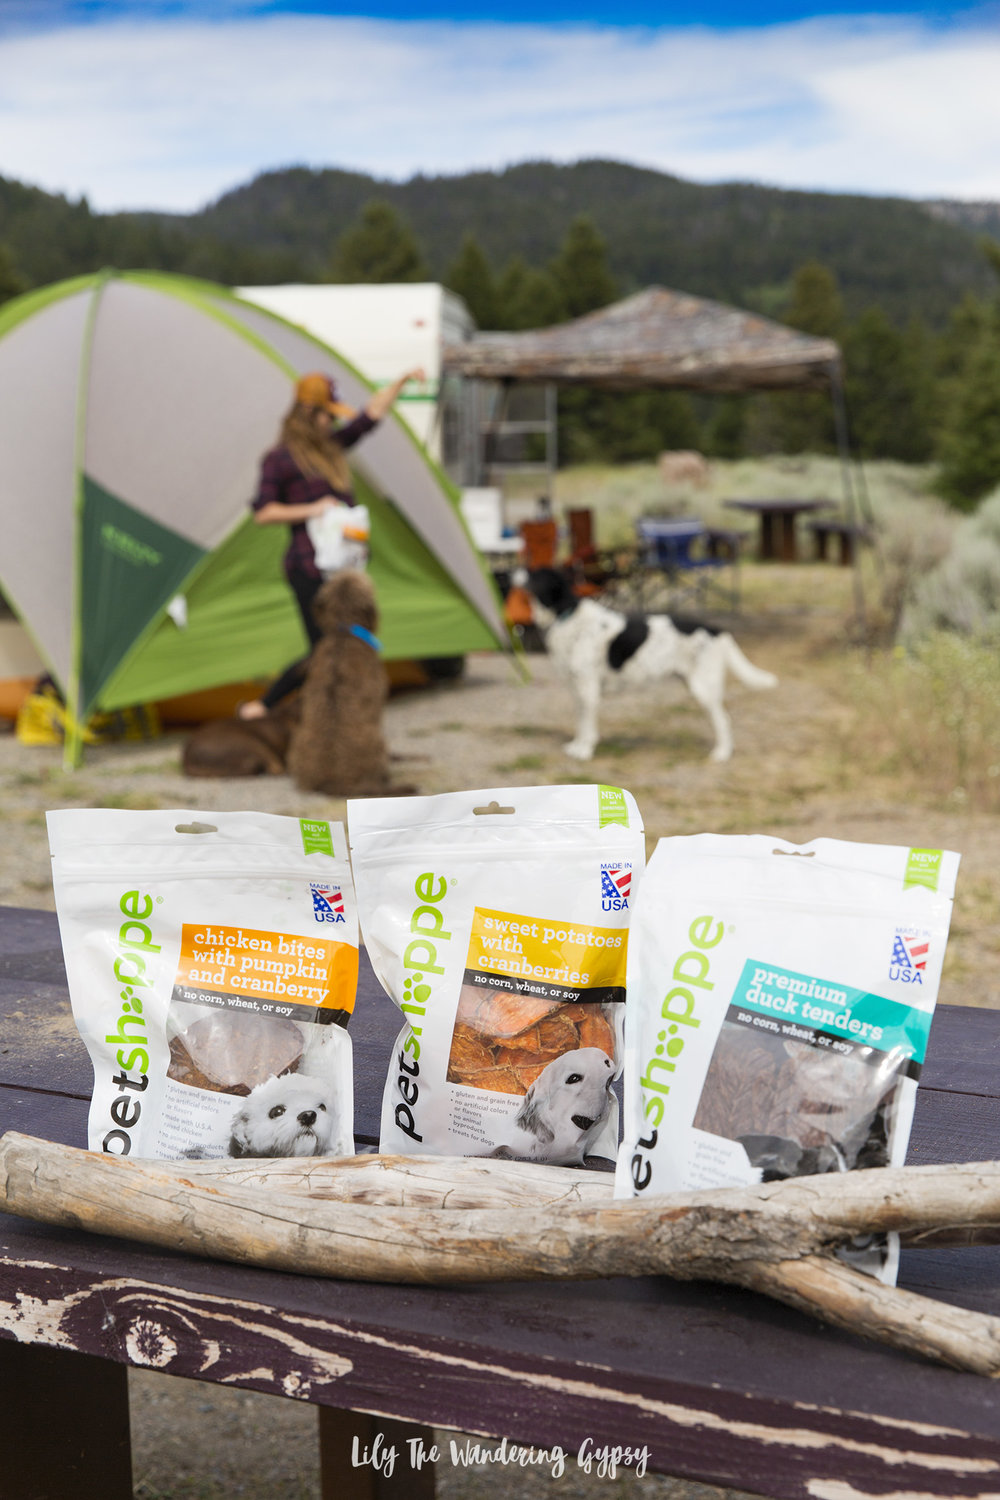 Camping With Dogs - Tips and Tricks - Walgreens #Petshoppe